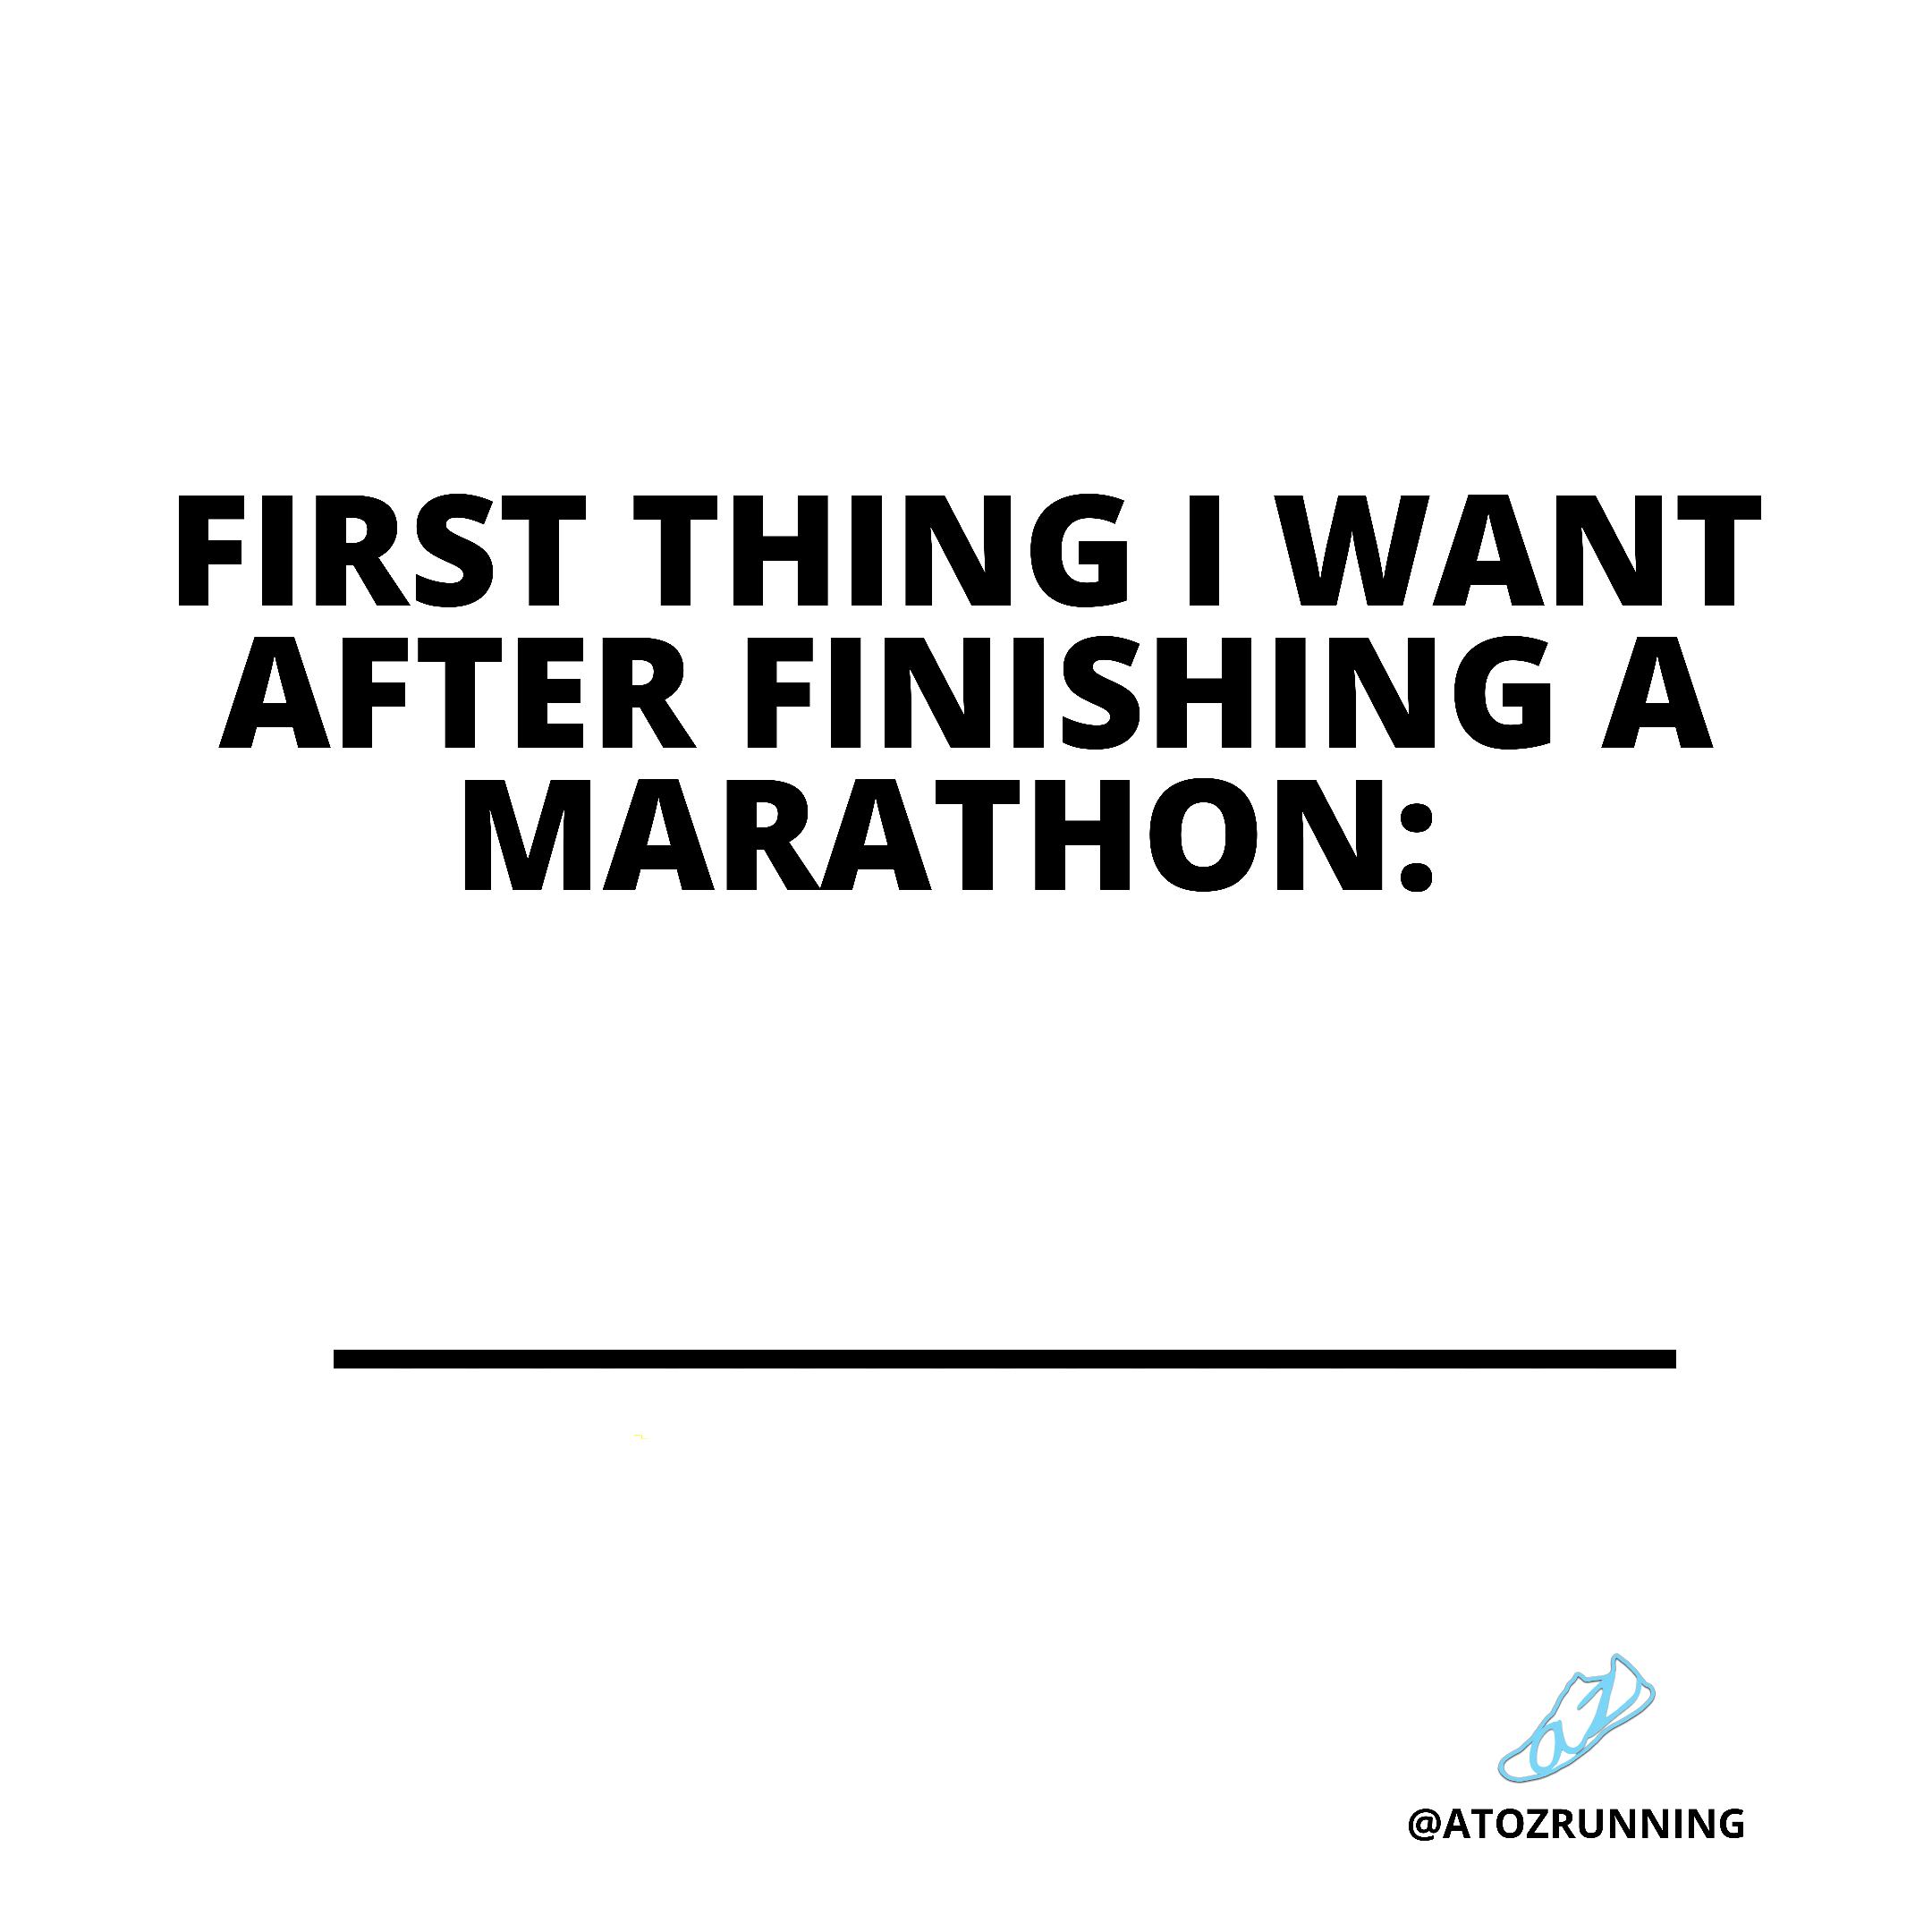 First thing I want after finishing a marathon